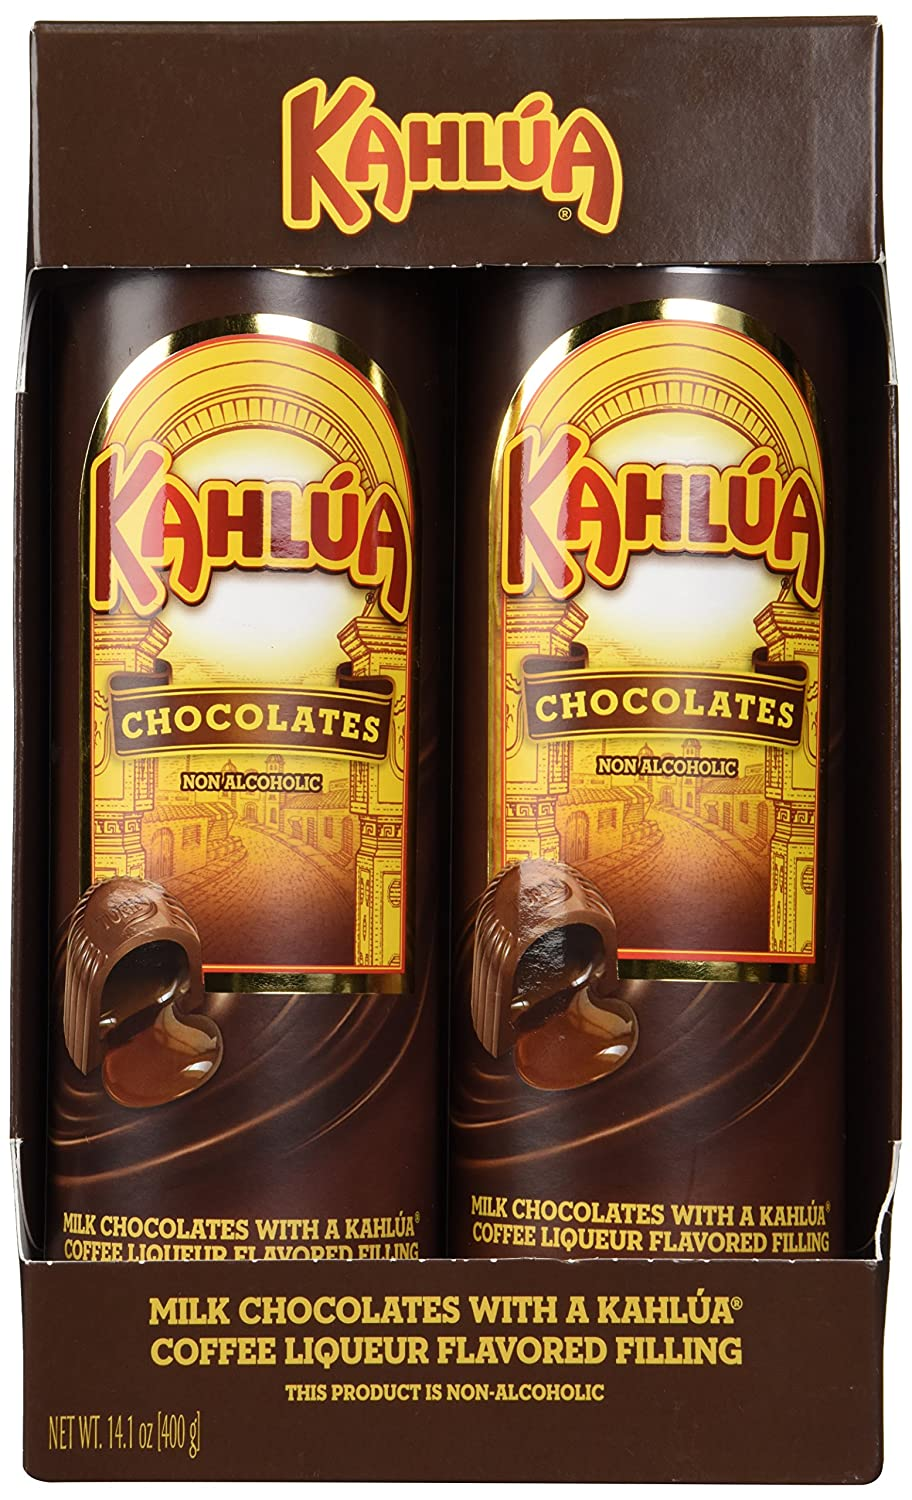 Amazon.com : Milk Chocolates Filled with Kahlua Coffee Liquor ...